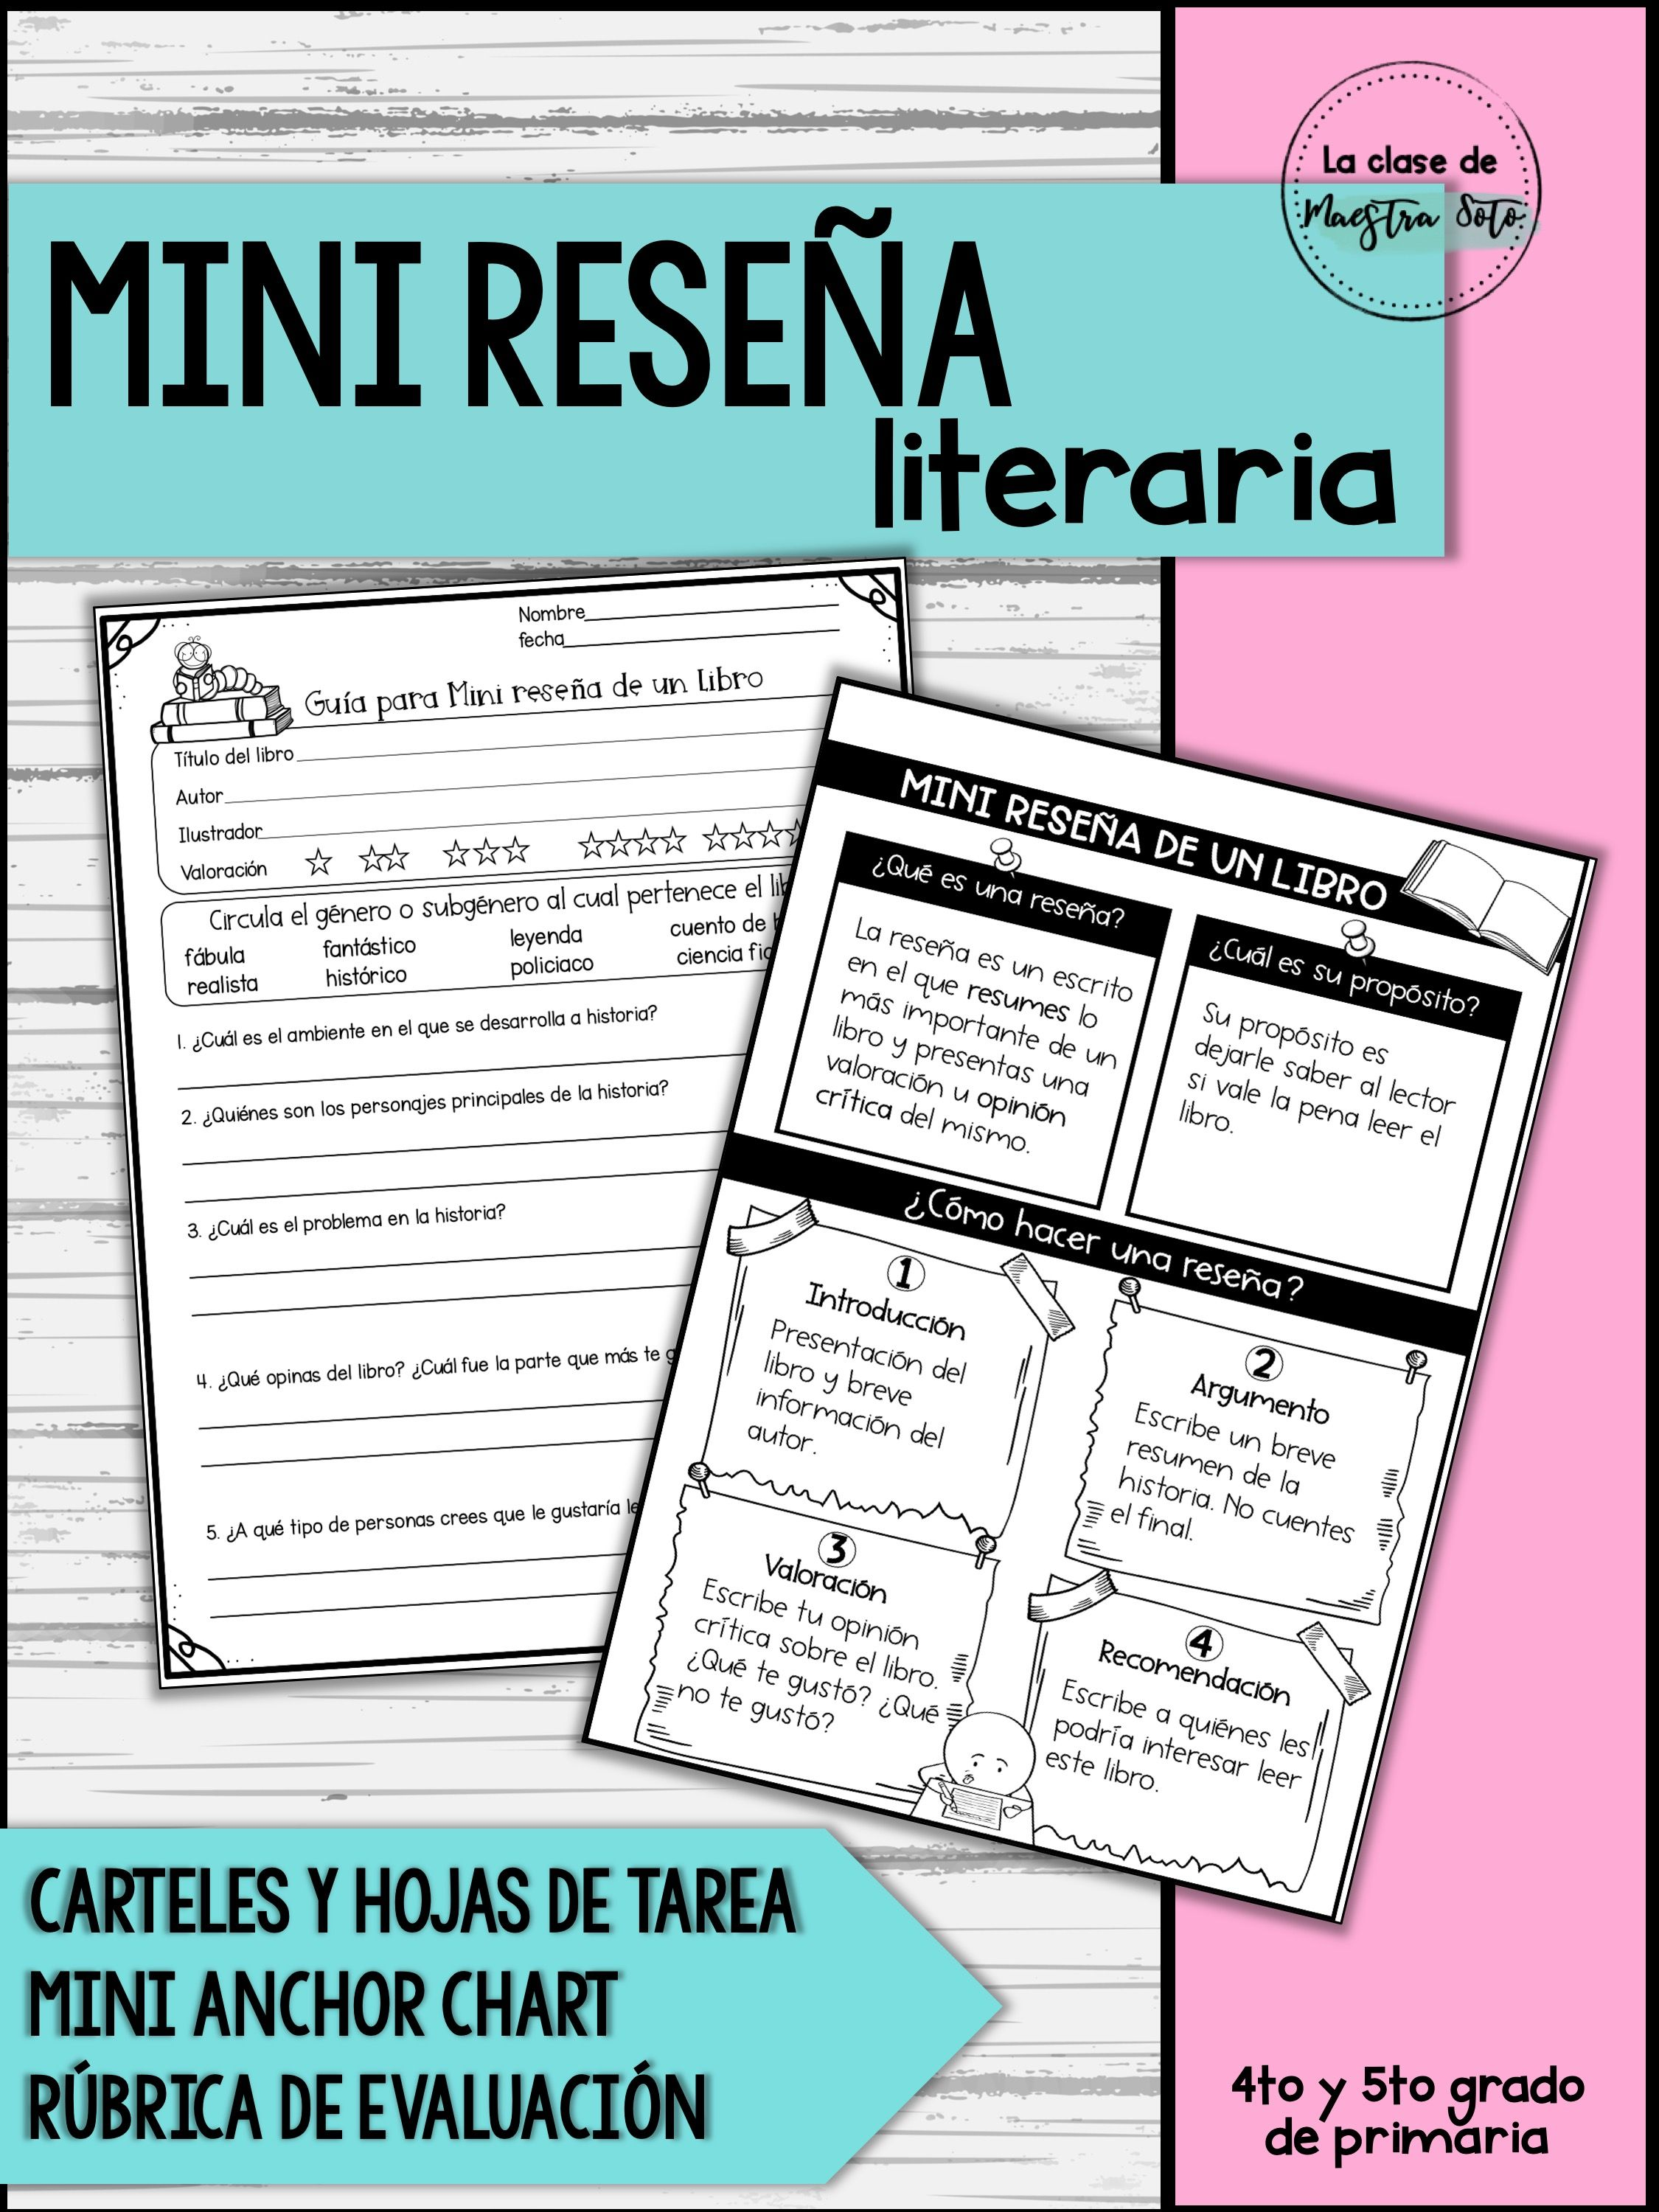 Mini Reseña Literaria Learning Education Journal